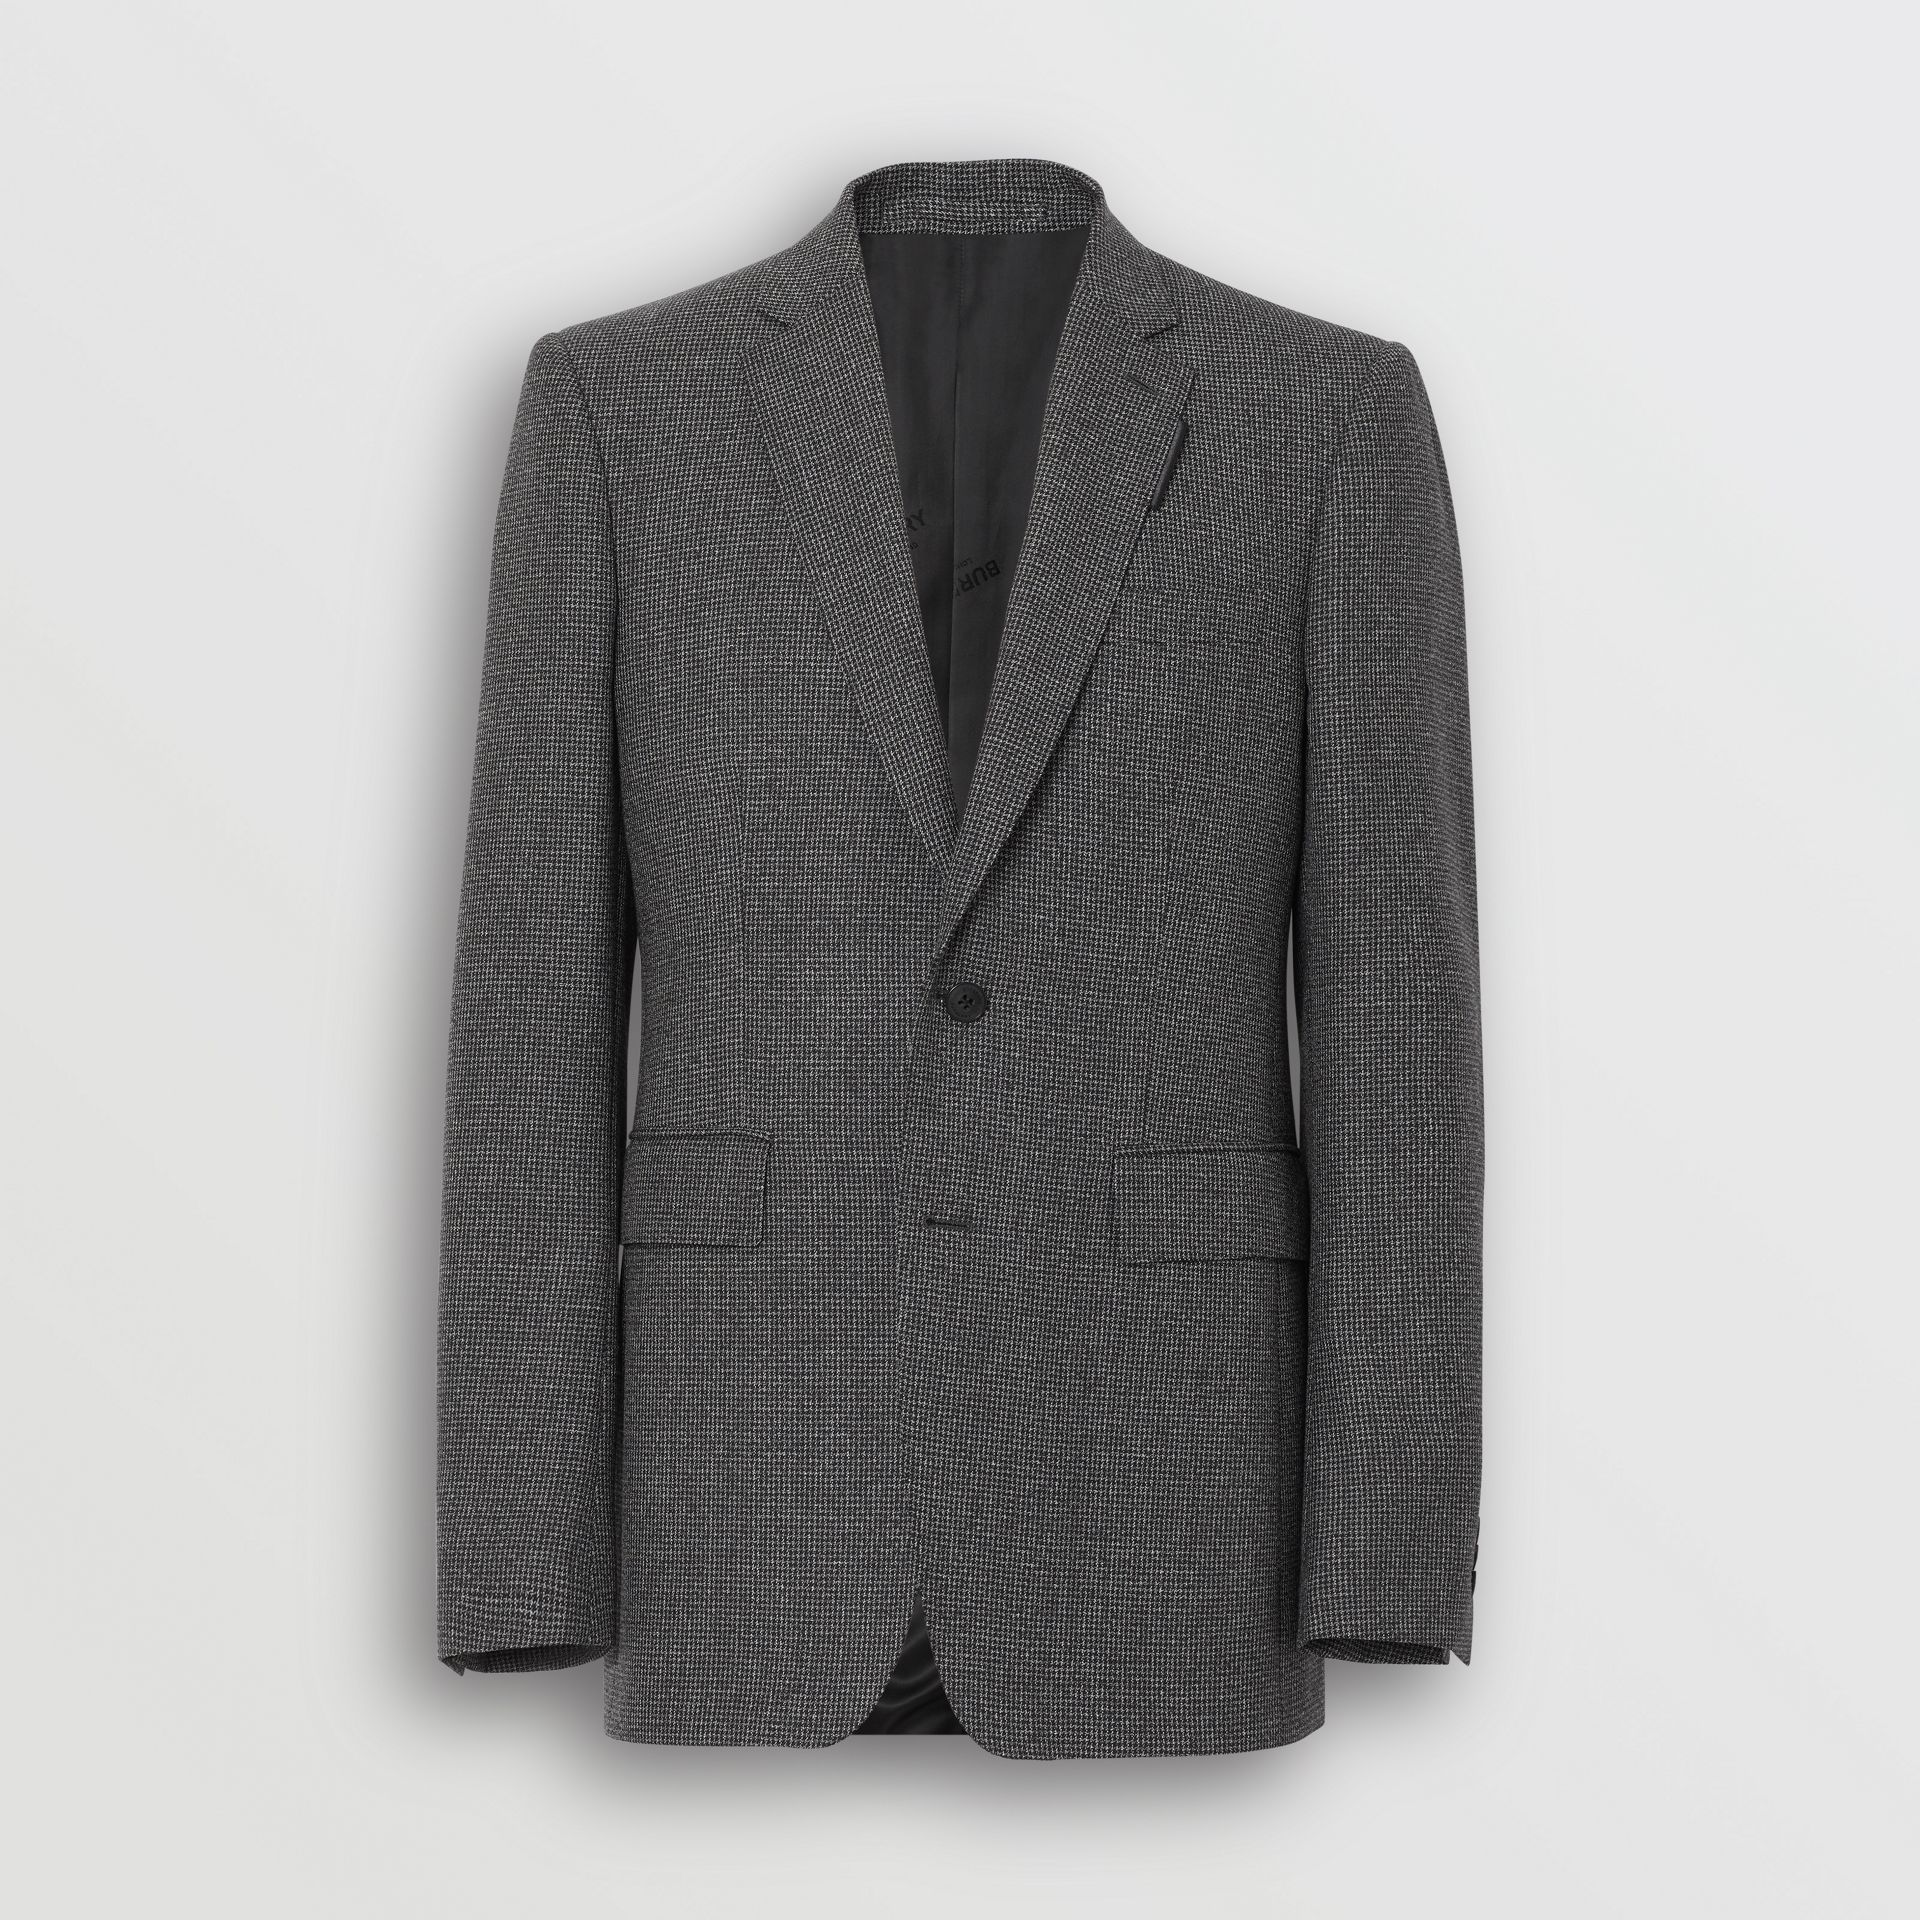 English Fit Puppytooth Check Wool Suit in Charcoal Melange - Men | Burberry Hong Kong S.A.R - gallery image 2